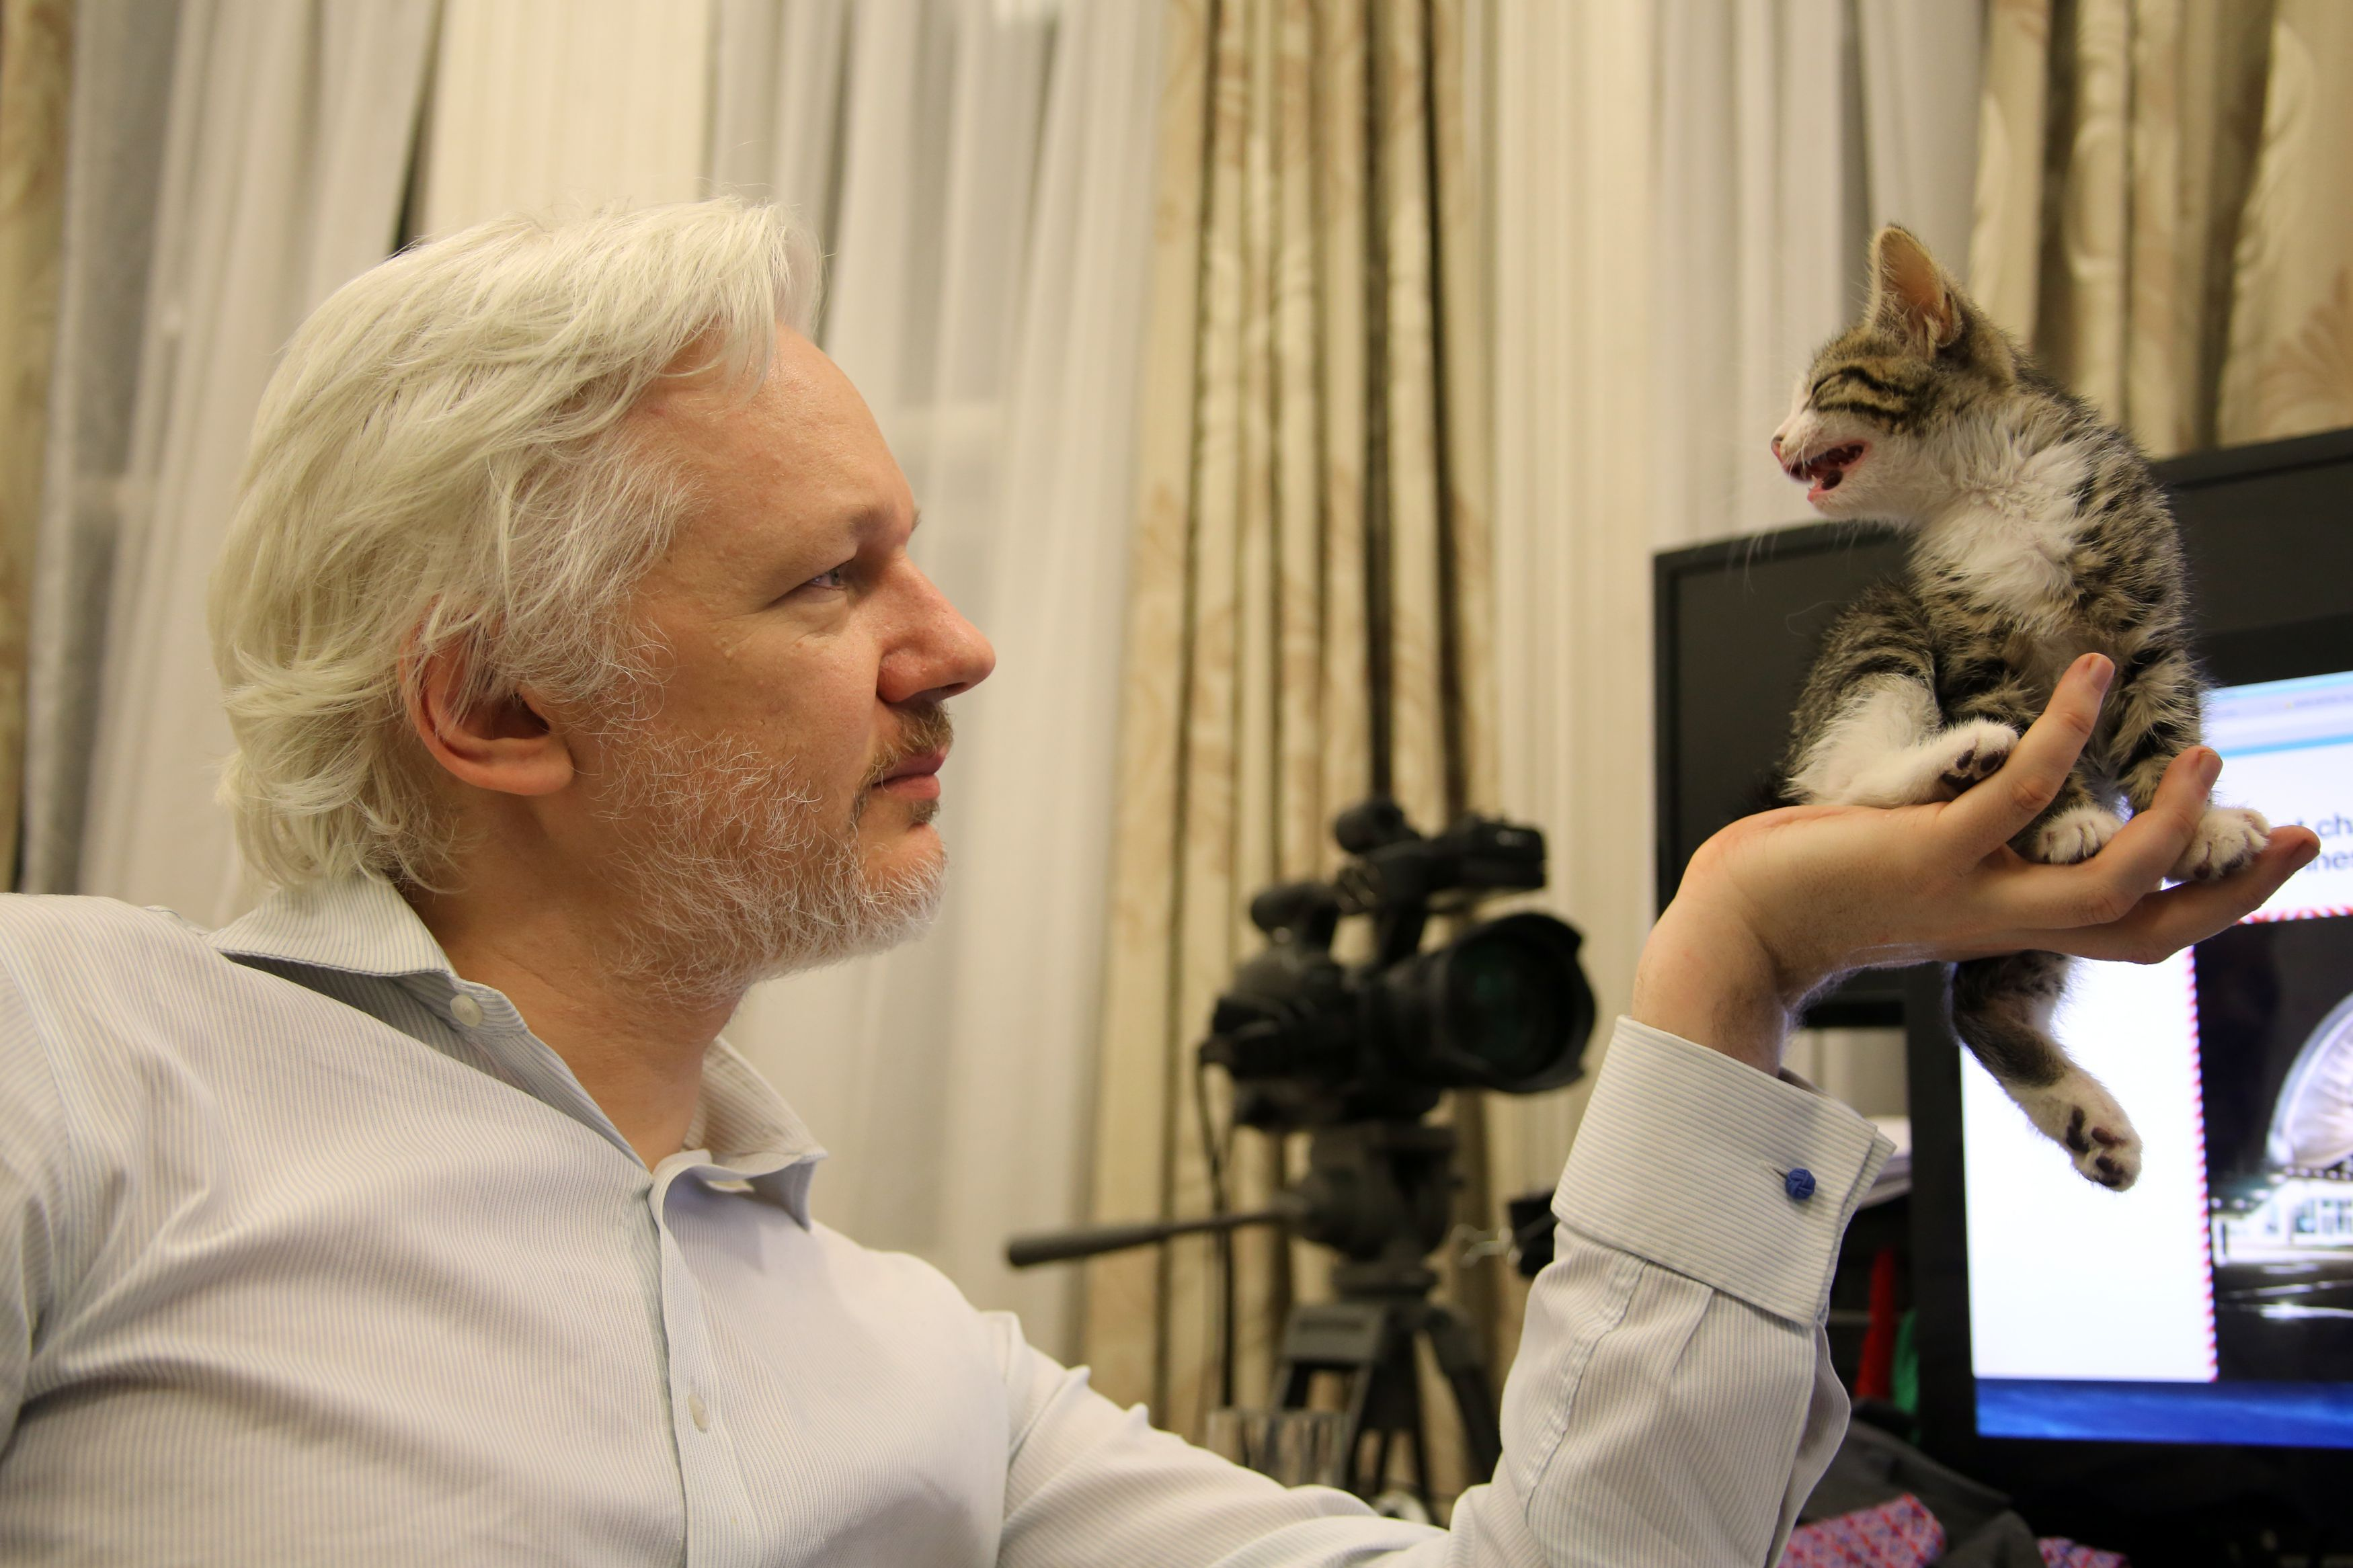 U.S. Preparing Charges To Arrest Julian Assange